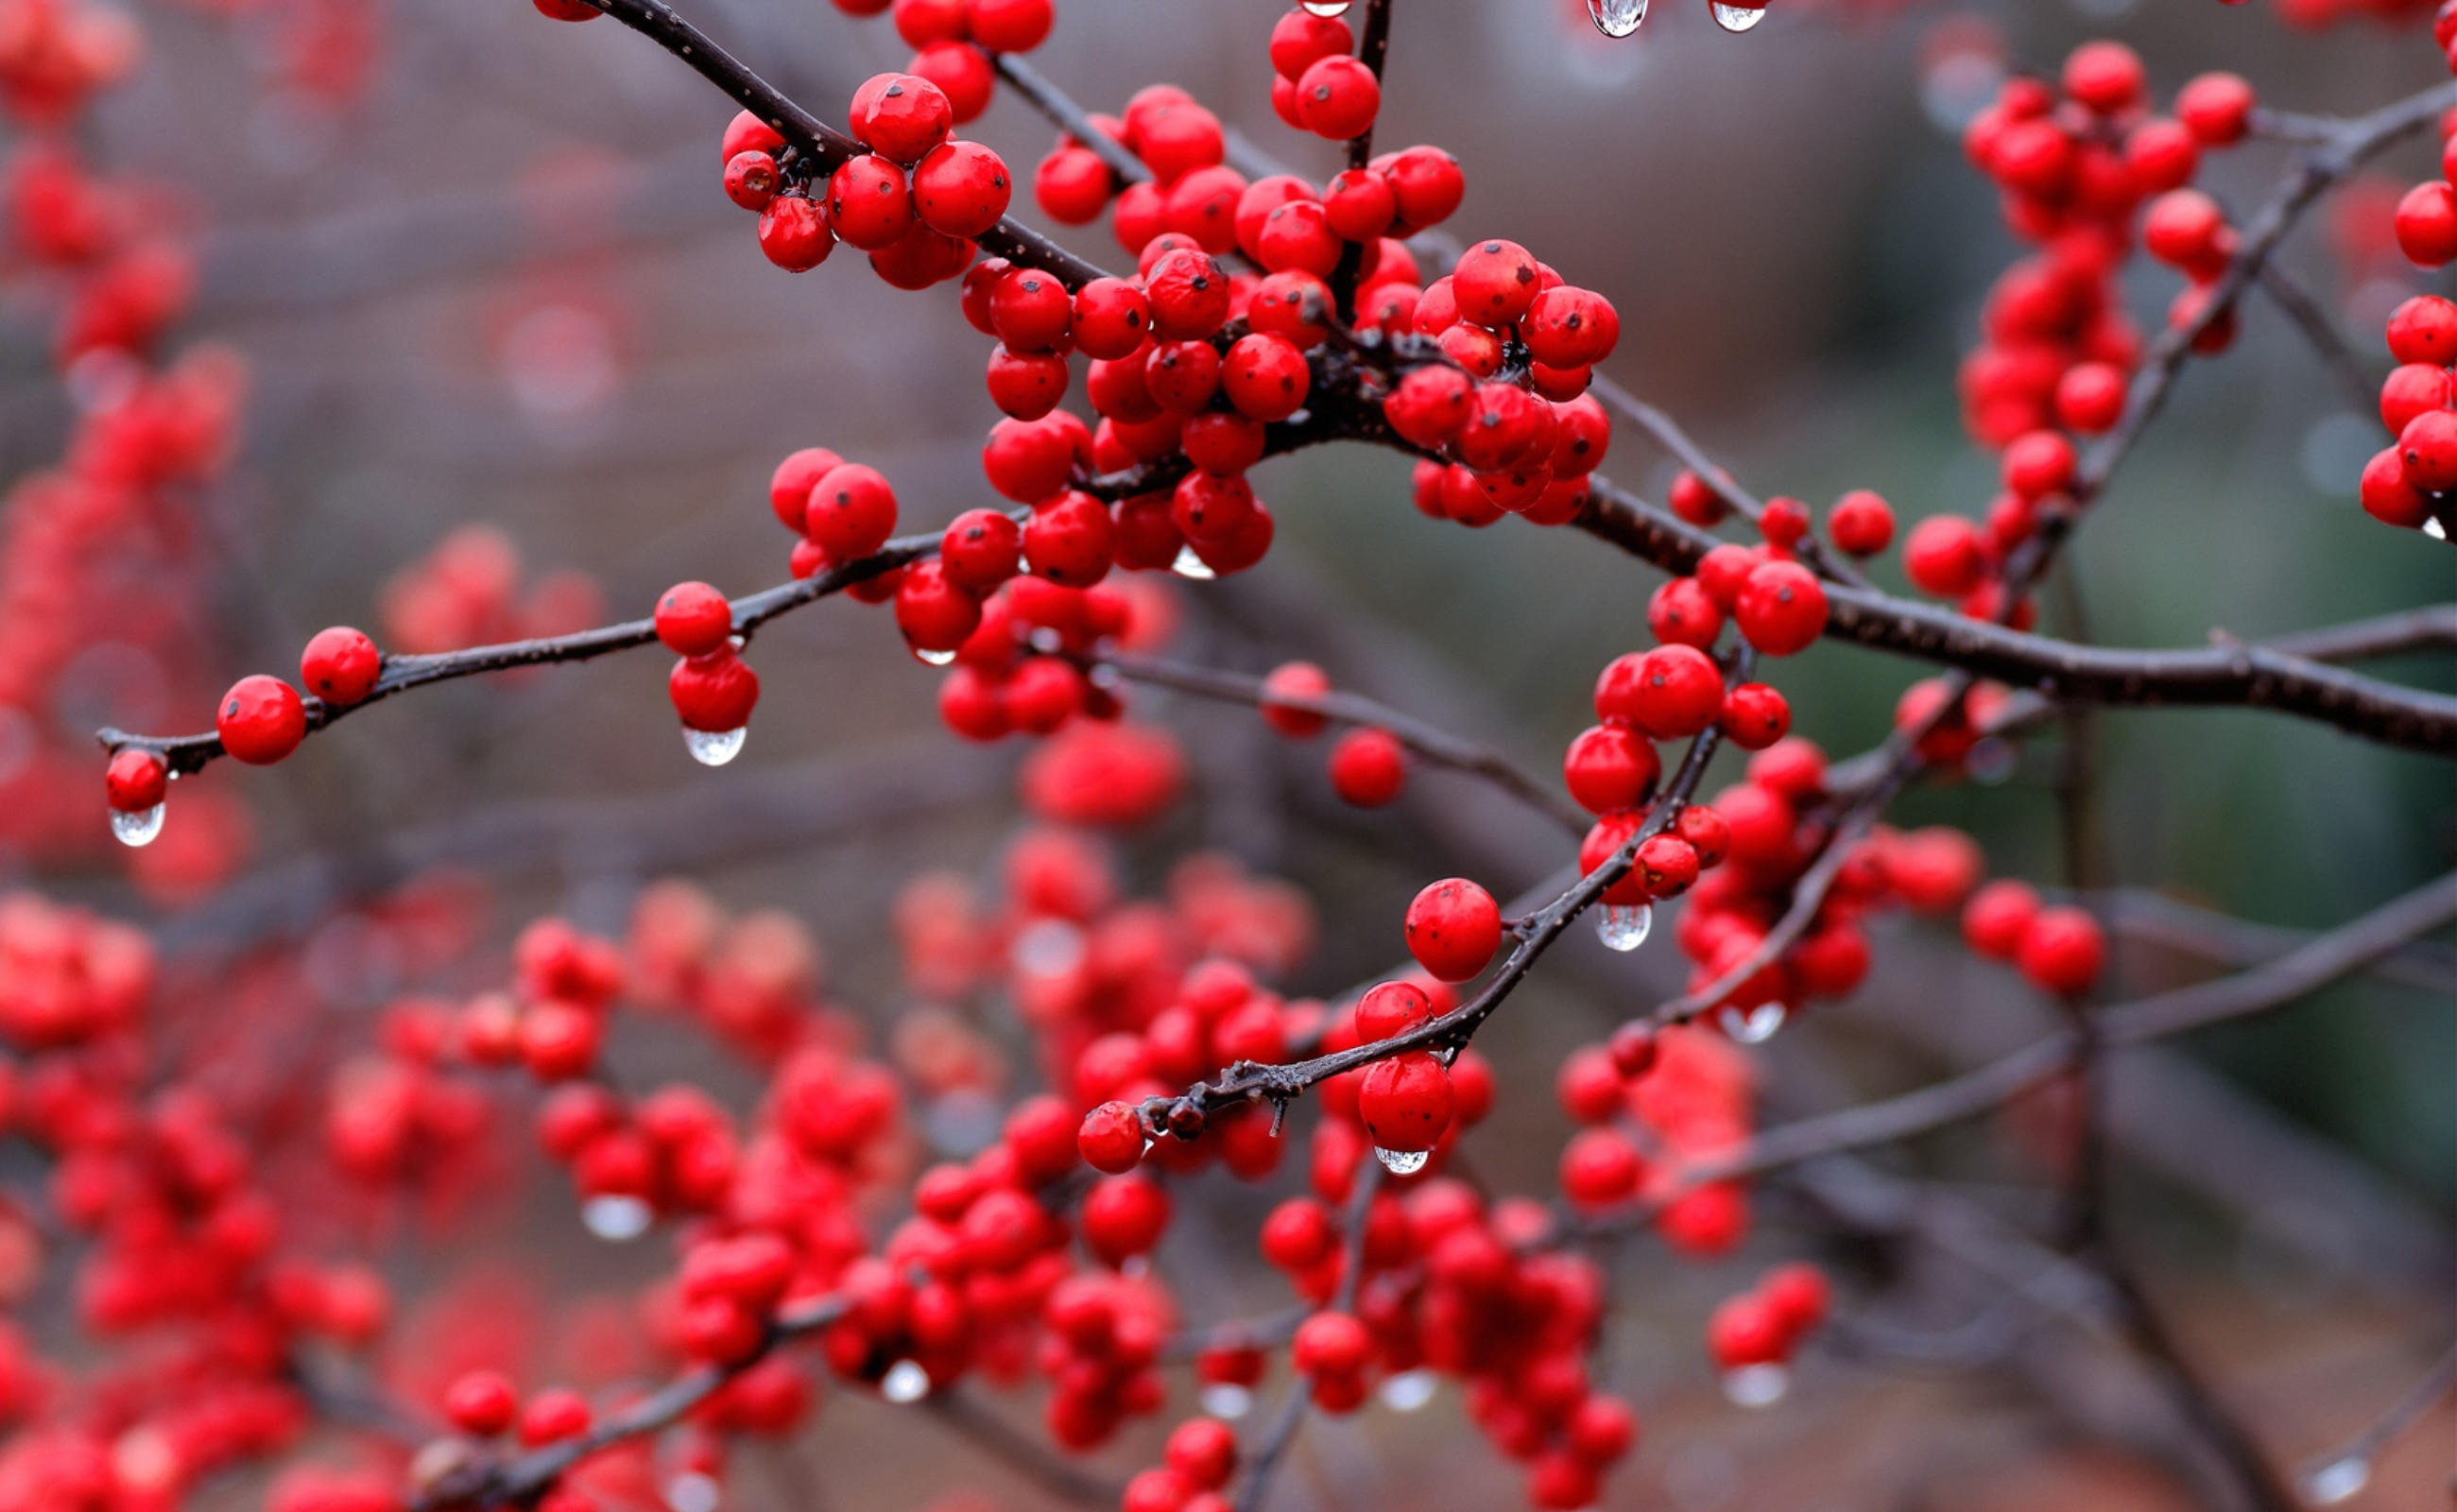 Res: 2600x1600, Red Berry Branch And Rain Drops (click to view)